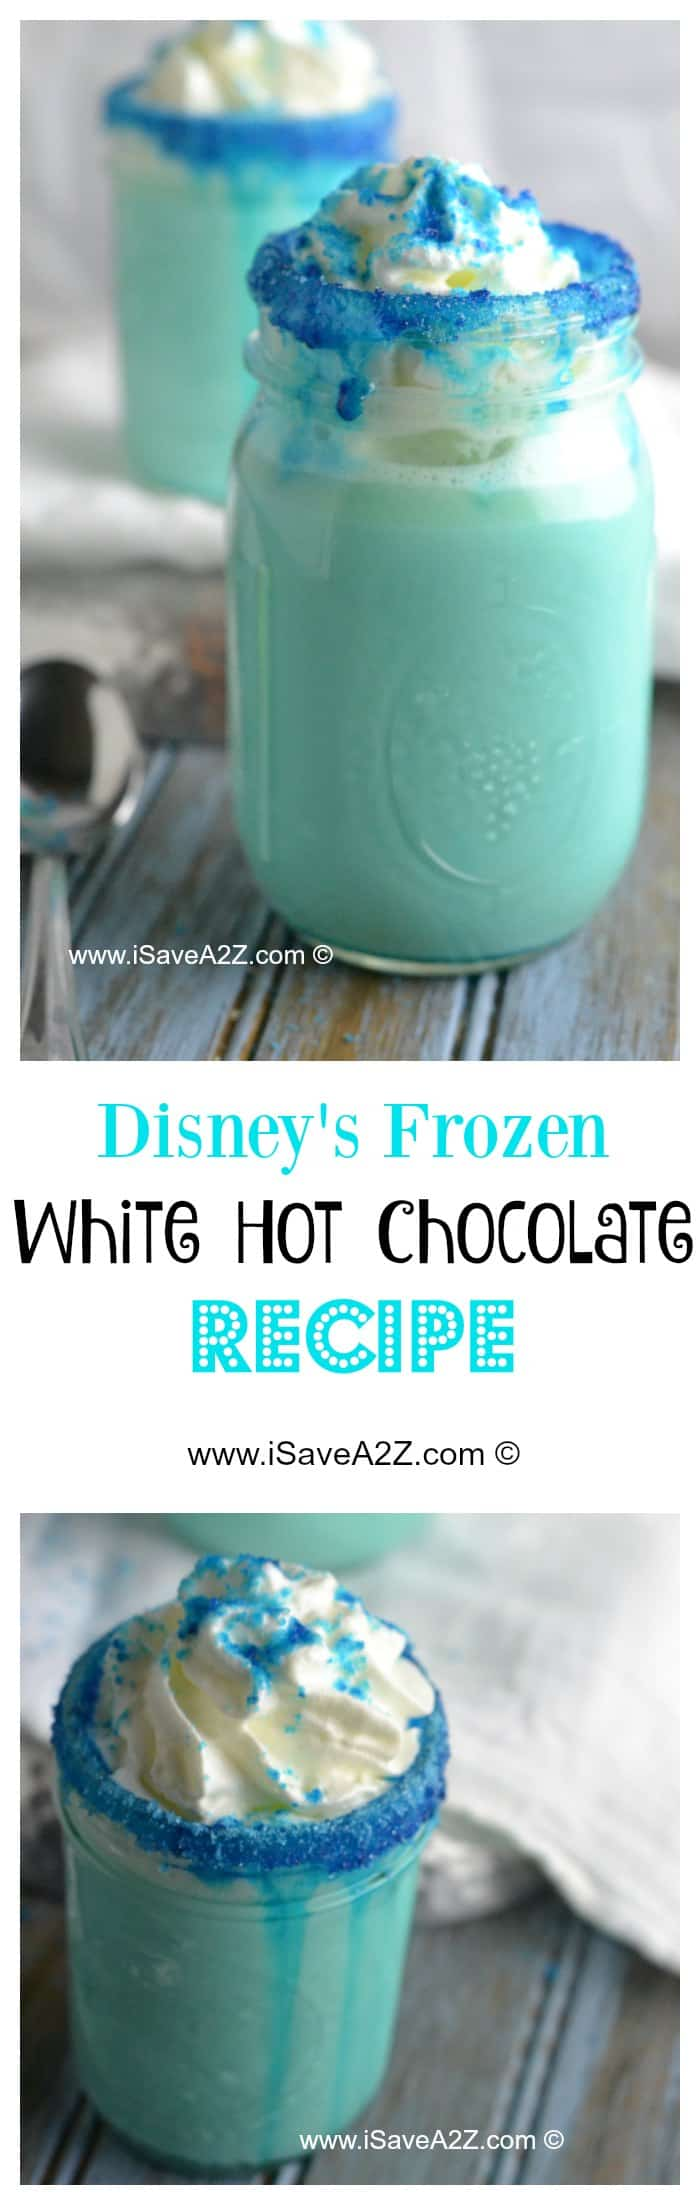 Disney's Frozen White Hot Chocolate Recipe